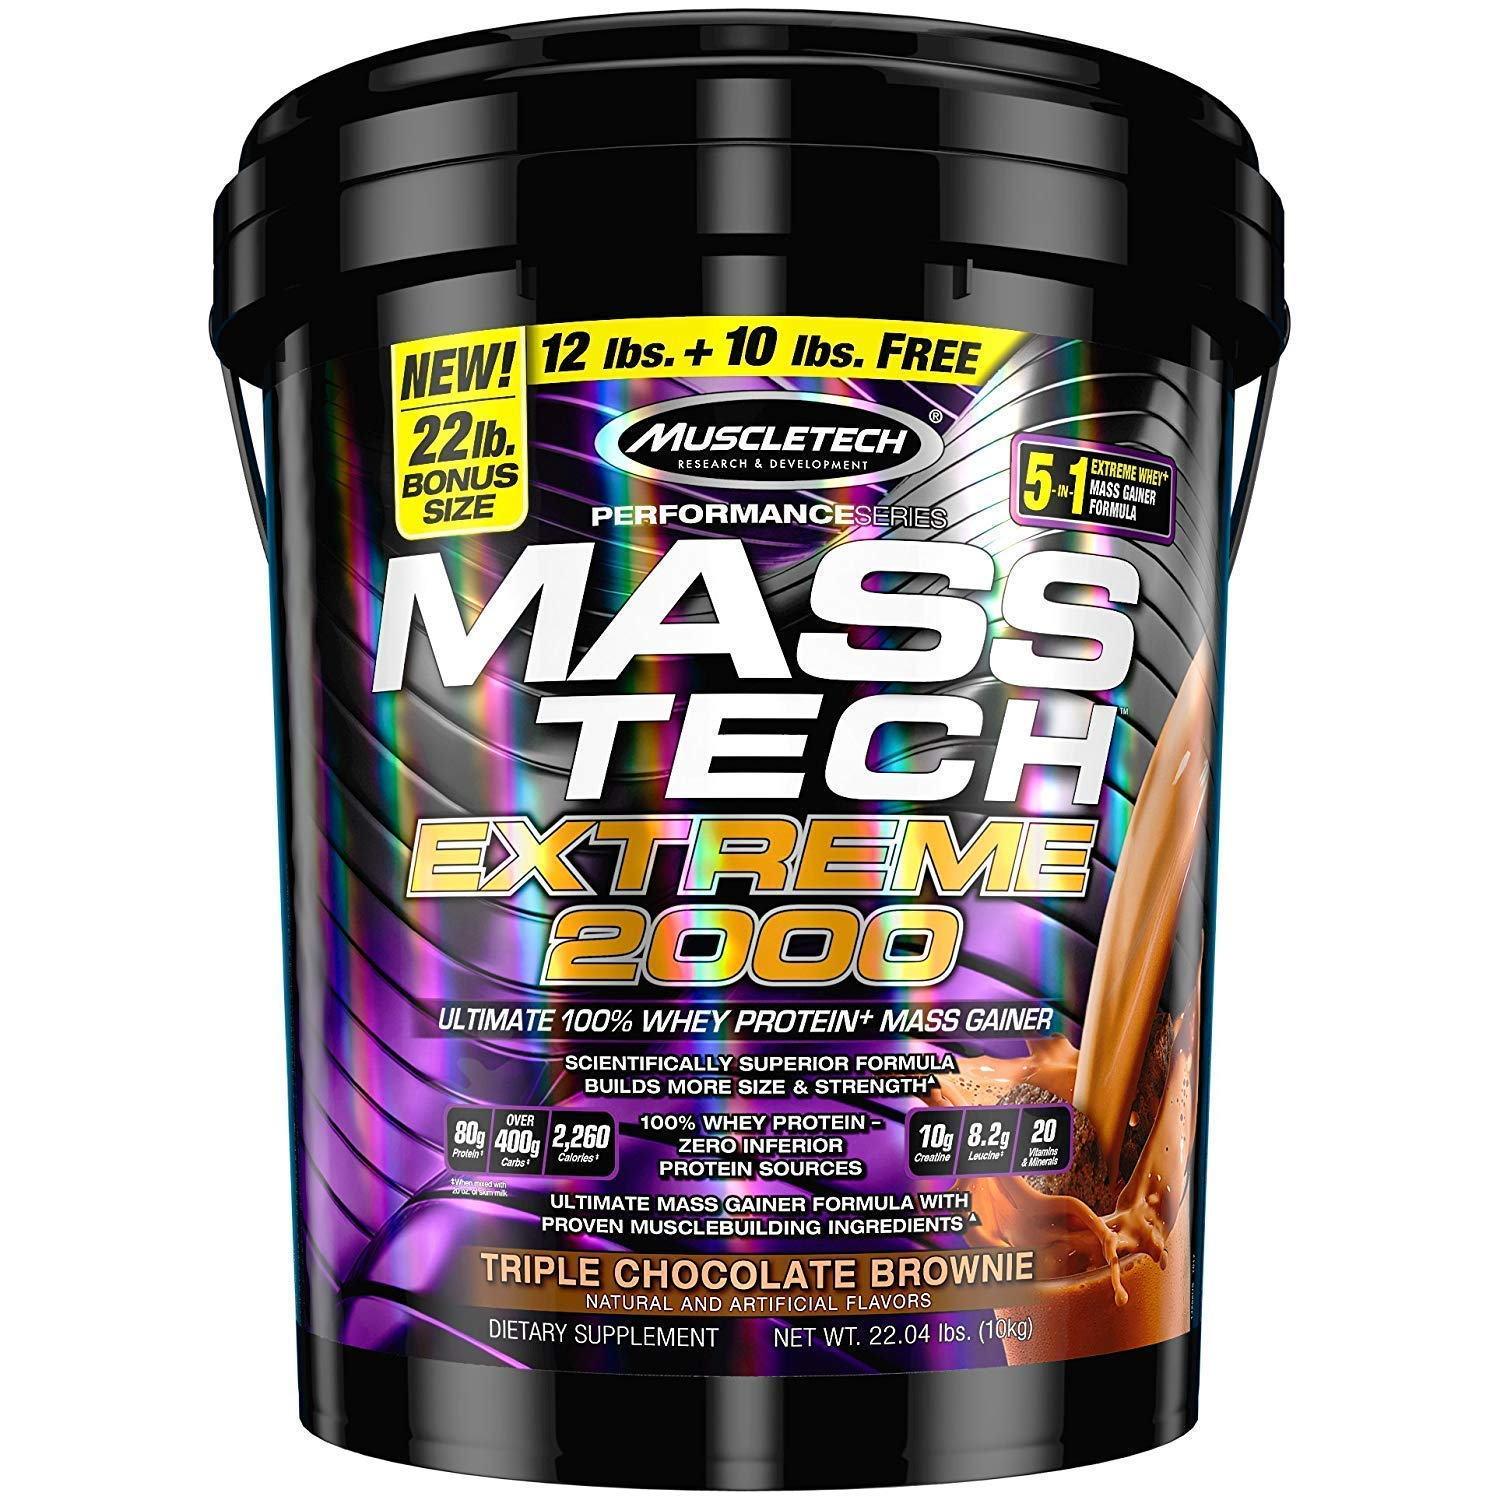 Muscletech Performance Series Mass Tech Extreme 2000 Triple Chocolate Brownie - 9979 gr